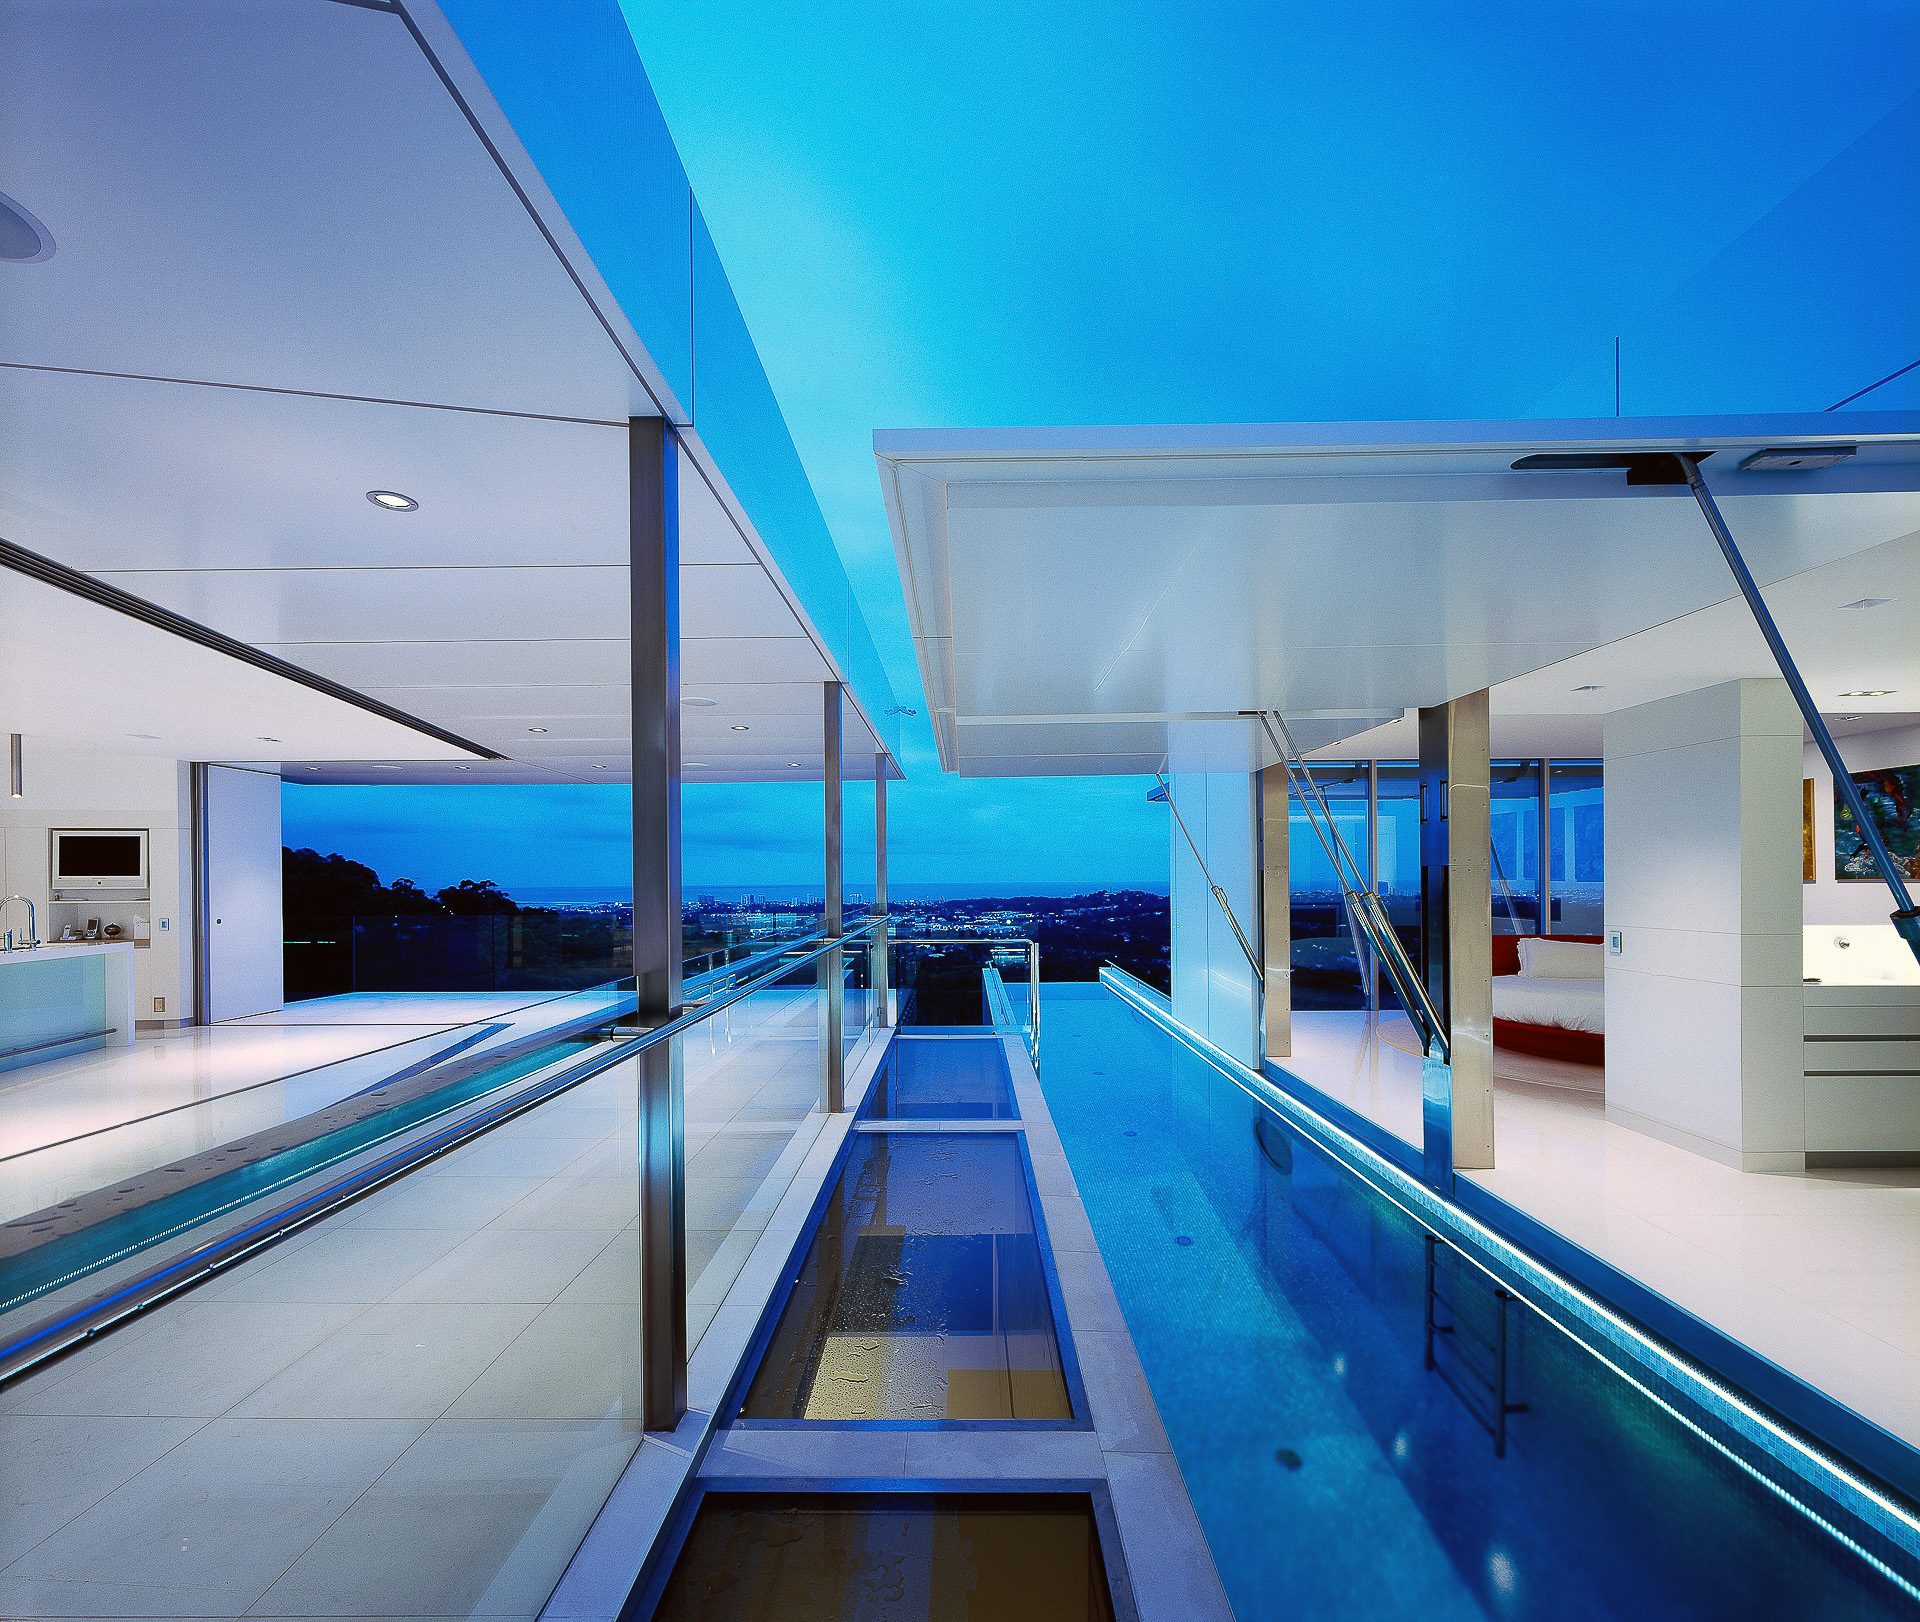 White kitchen, corian, glacier white, luxury kitchen, pool, ultramodern kitchen, minimal kitchen, minka joinery